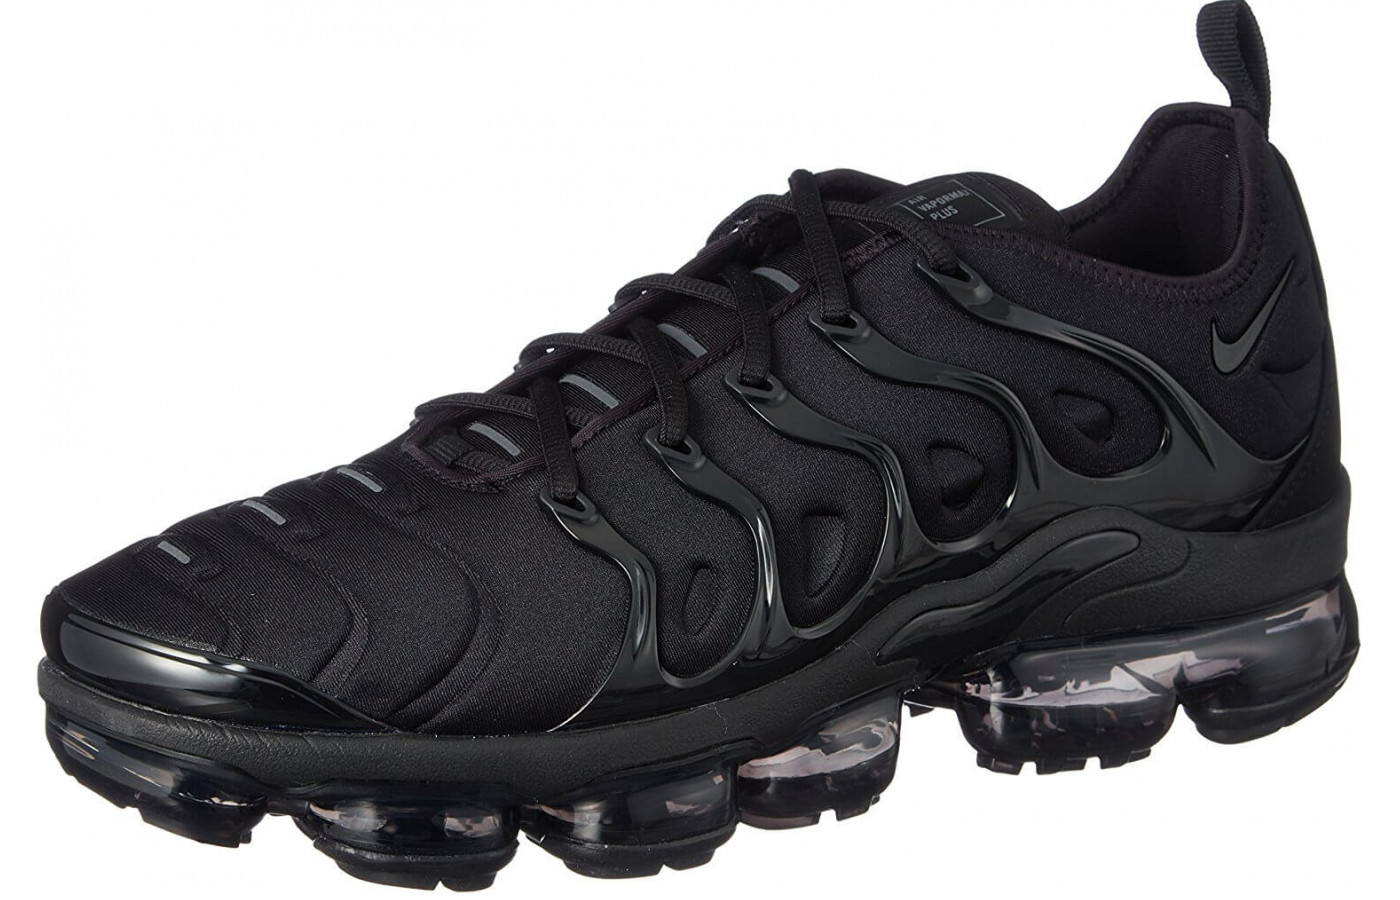 4a66478a79c Nike Air VaporMax Plus Review - Buy or Not in May 2019